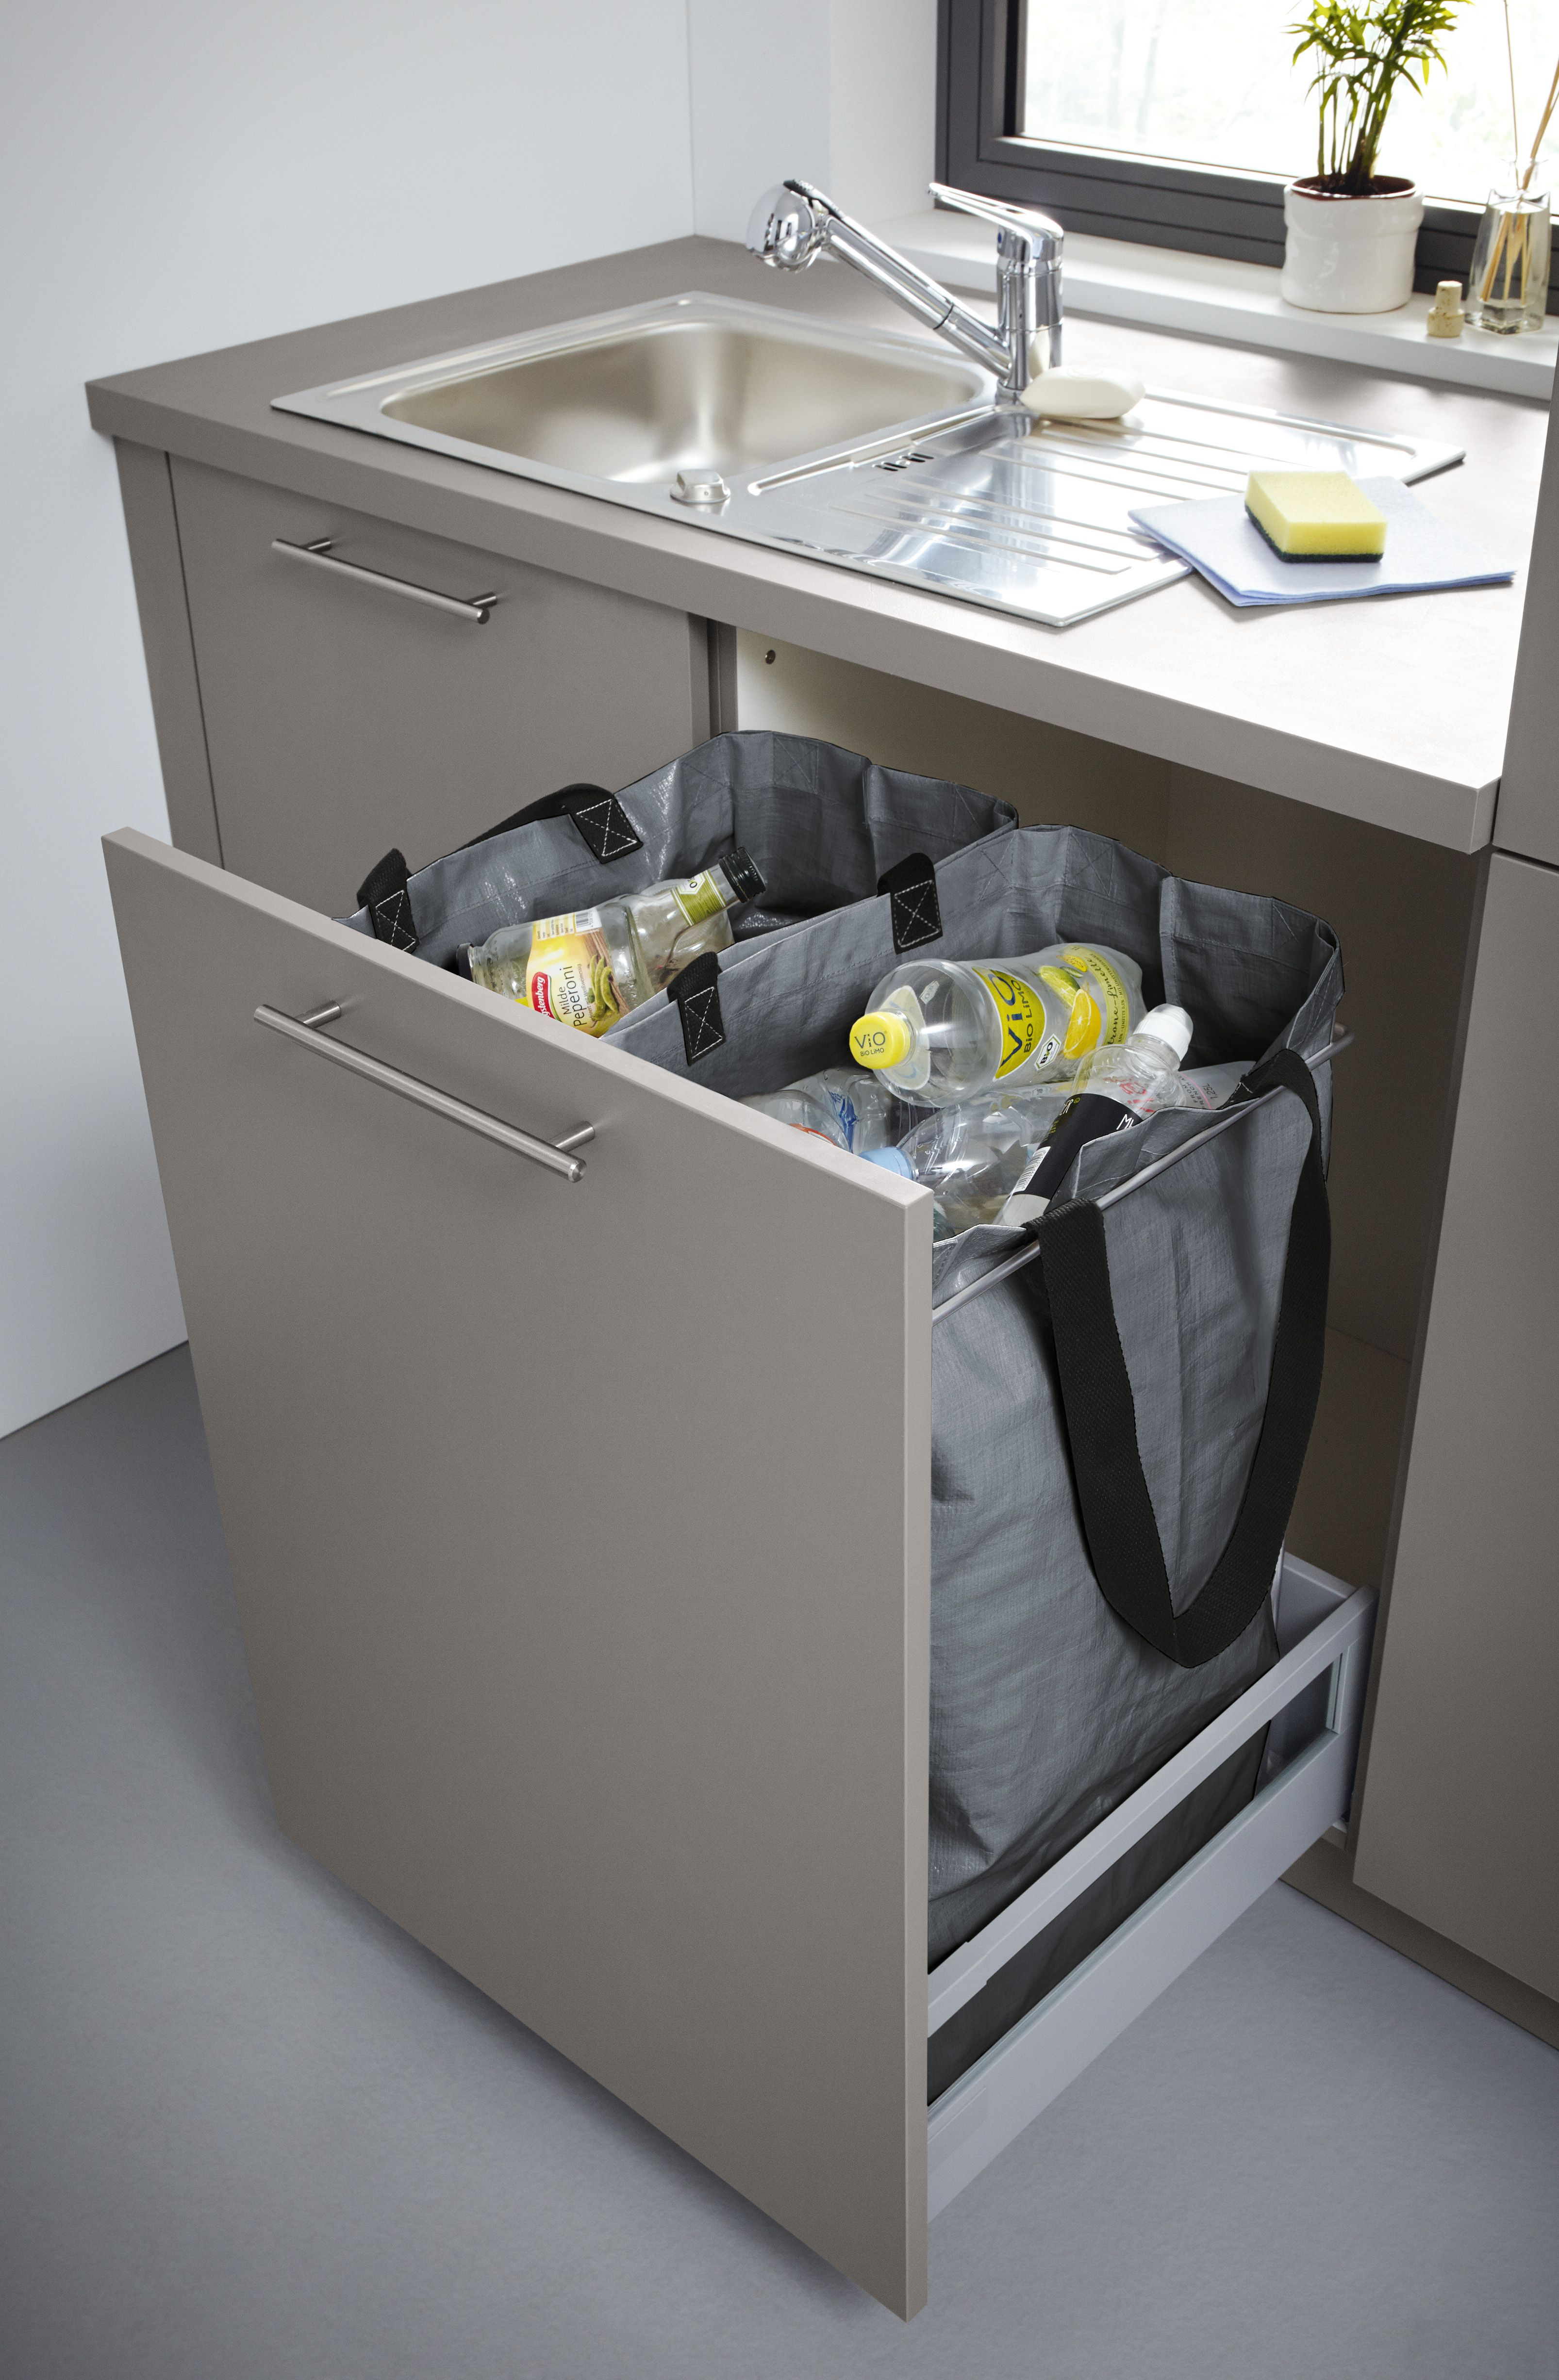 Schuller recycling storage pull-out.   Schüller utility room ...